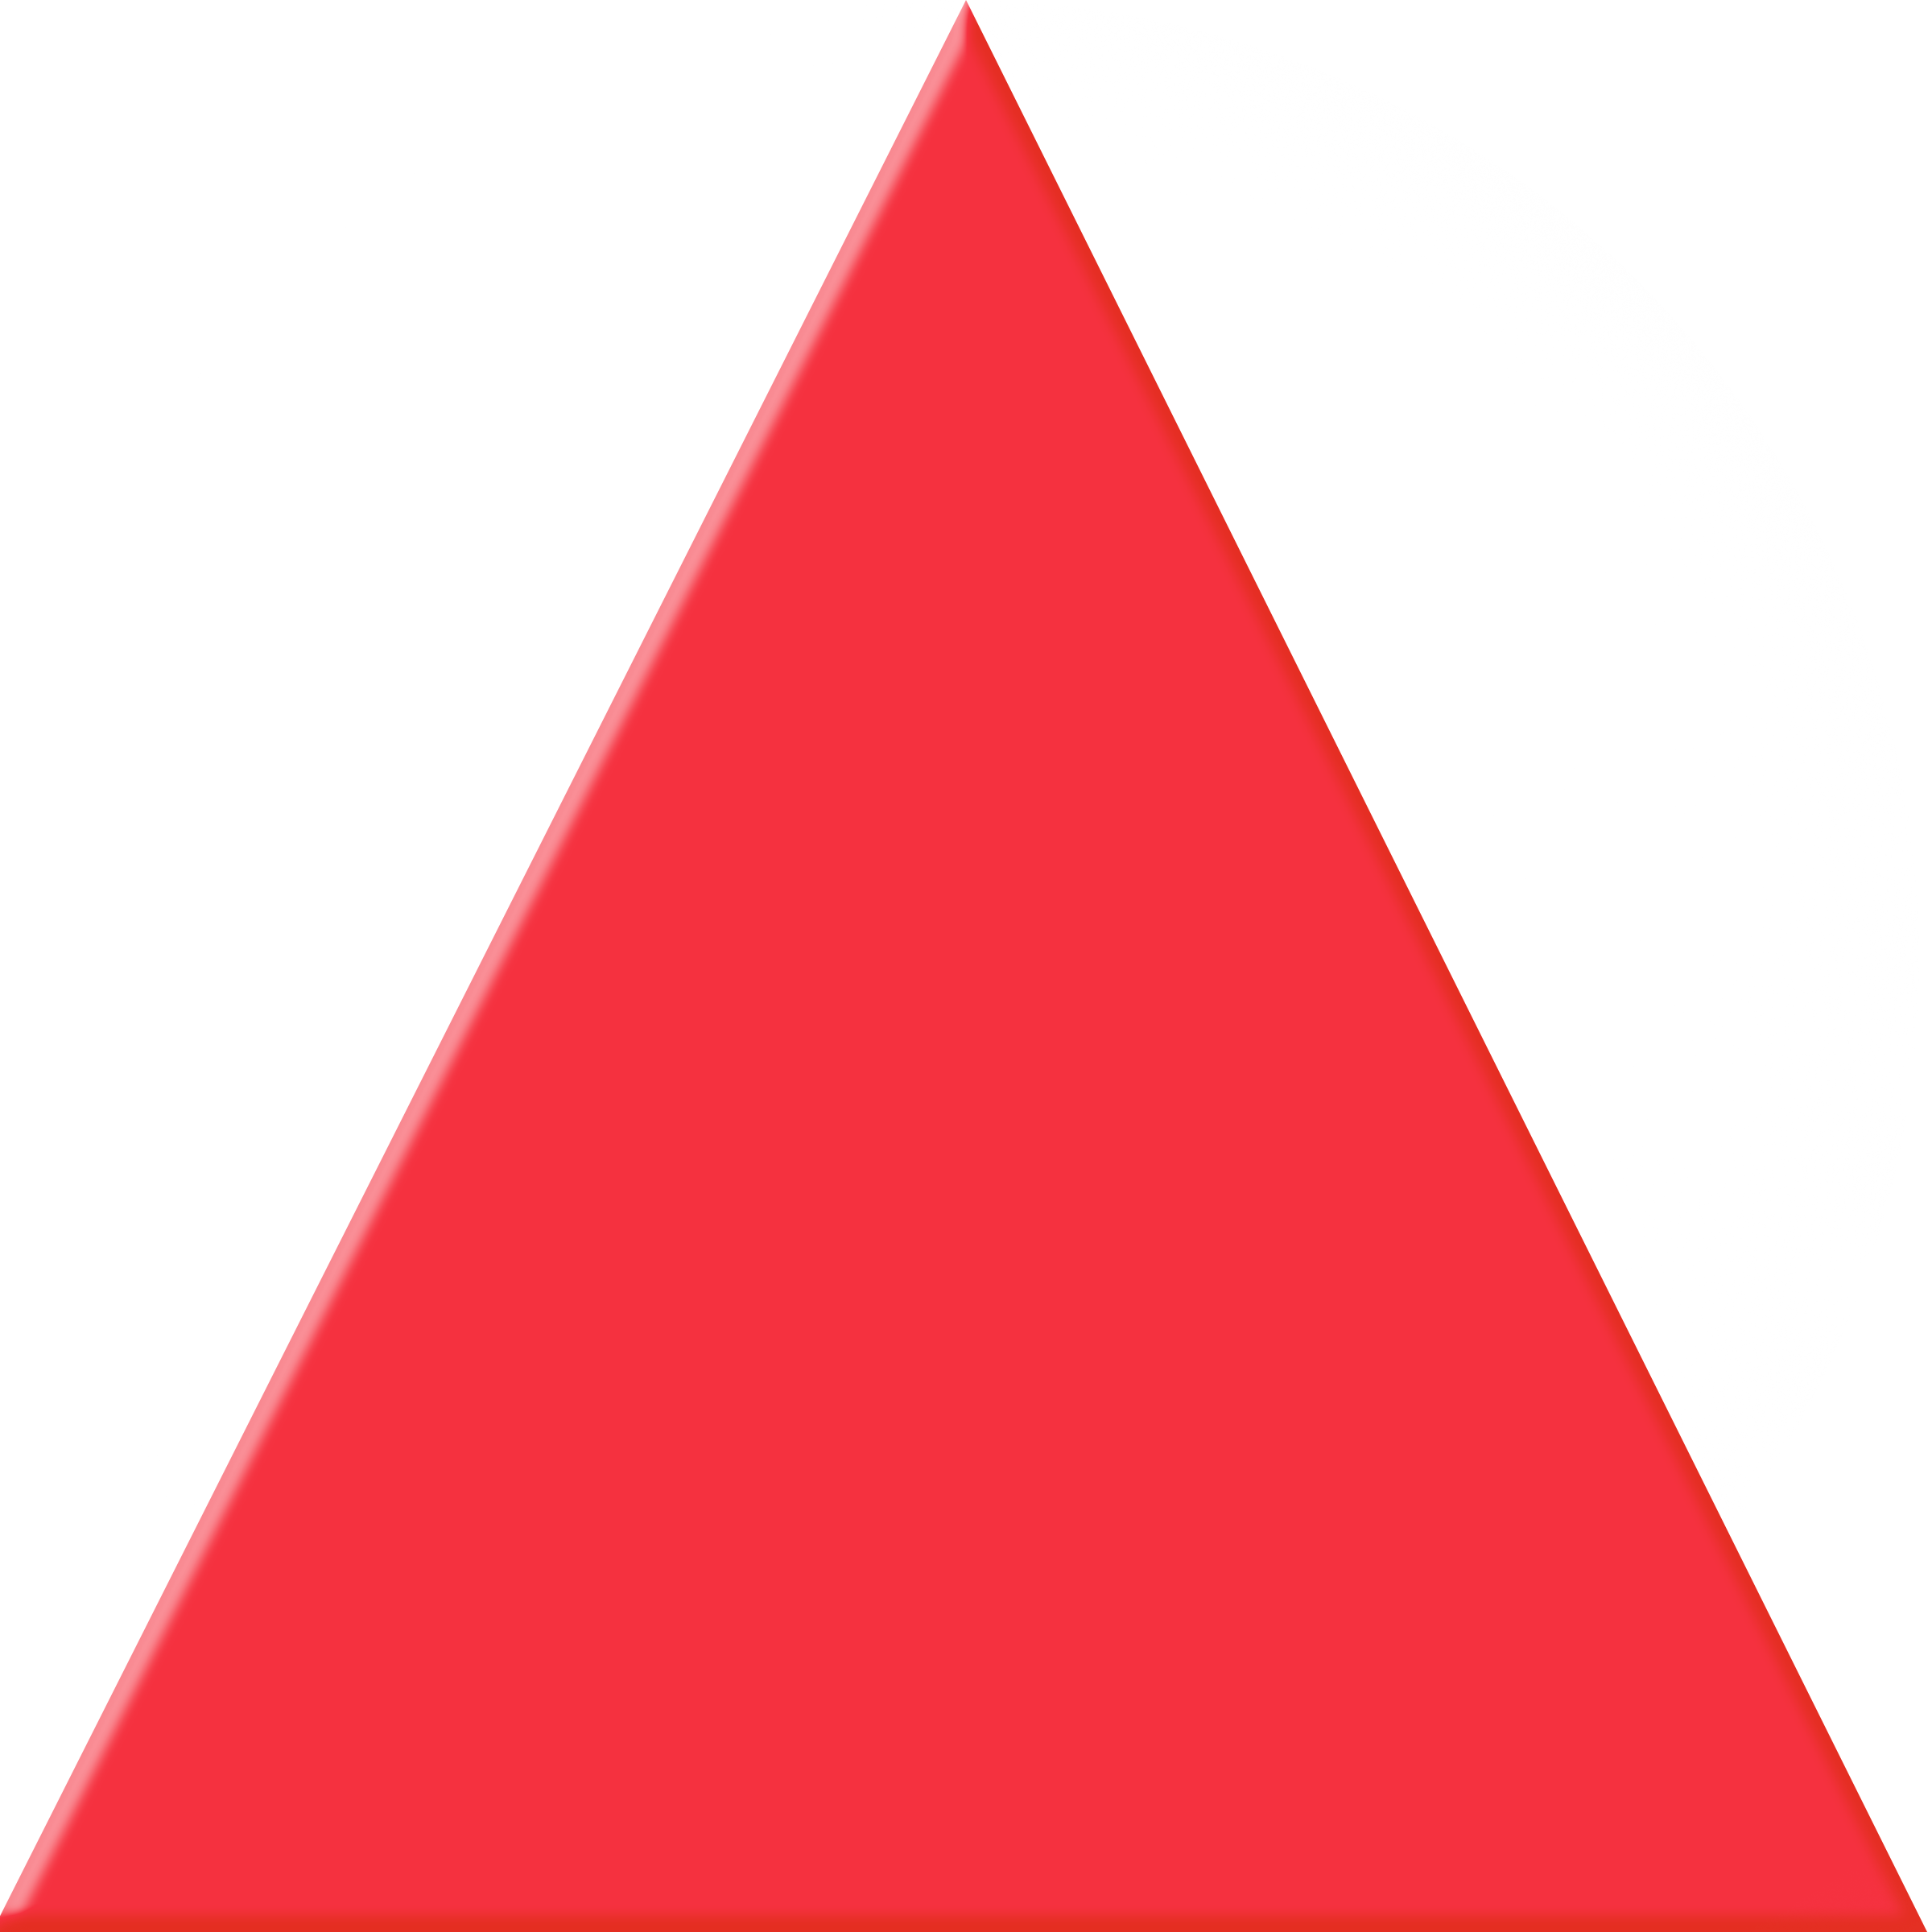 Red Triangle   Free Images At Clker Com   Vector Clip Art Online